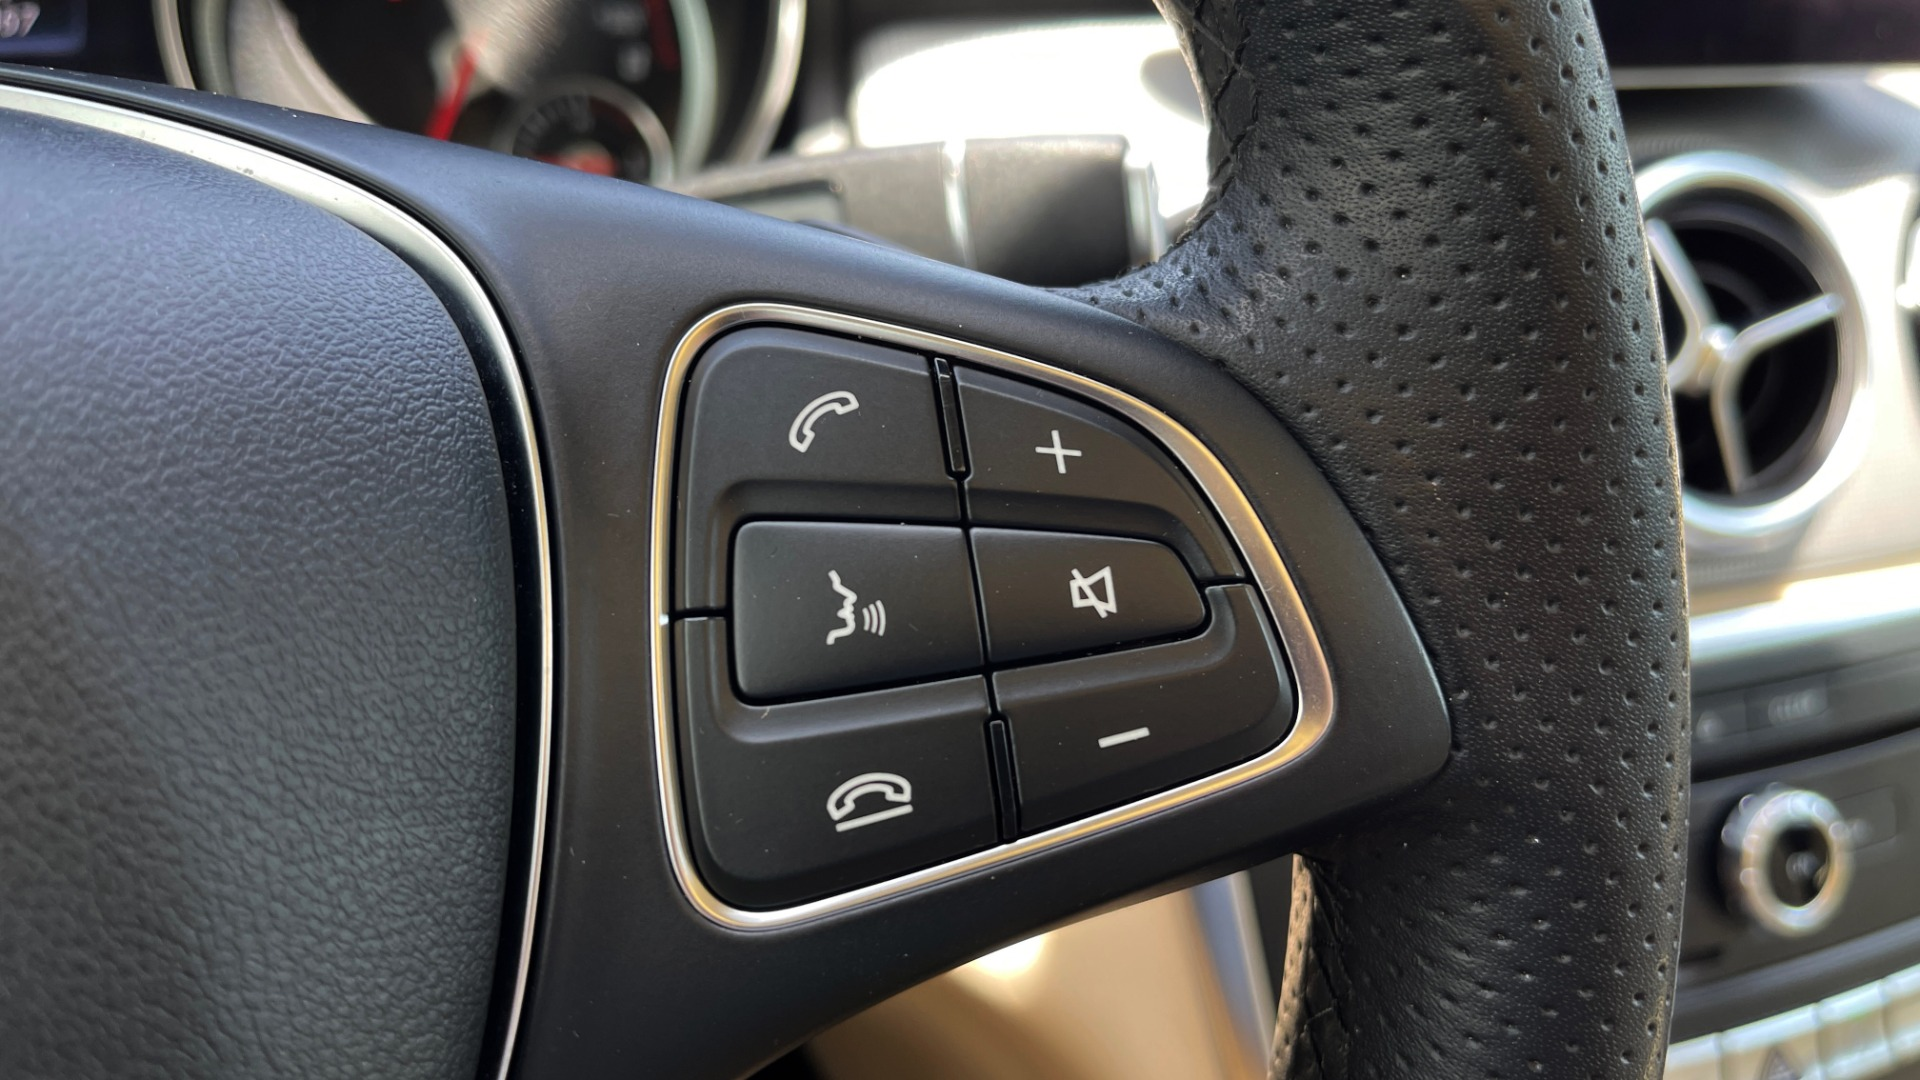 Used 2018 Mercedes-Benz GLA 250 4MATIC SUV / PANO-ROOF / HTD STS / BLIND SPOT ASST / APPLE for sale $31,995 at Formula Imports in Charlotte NC 28227 39